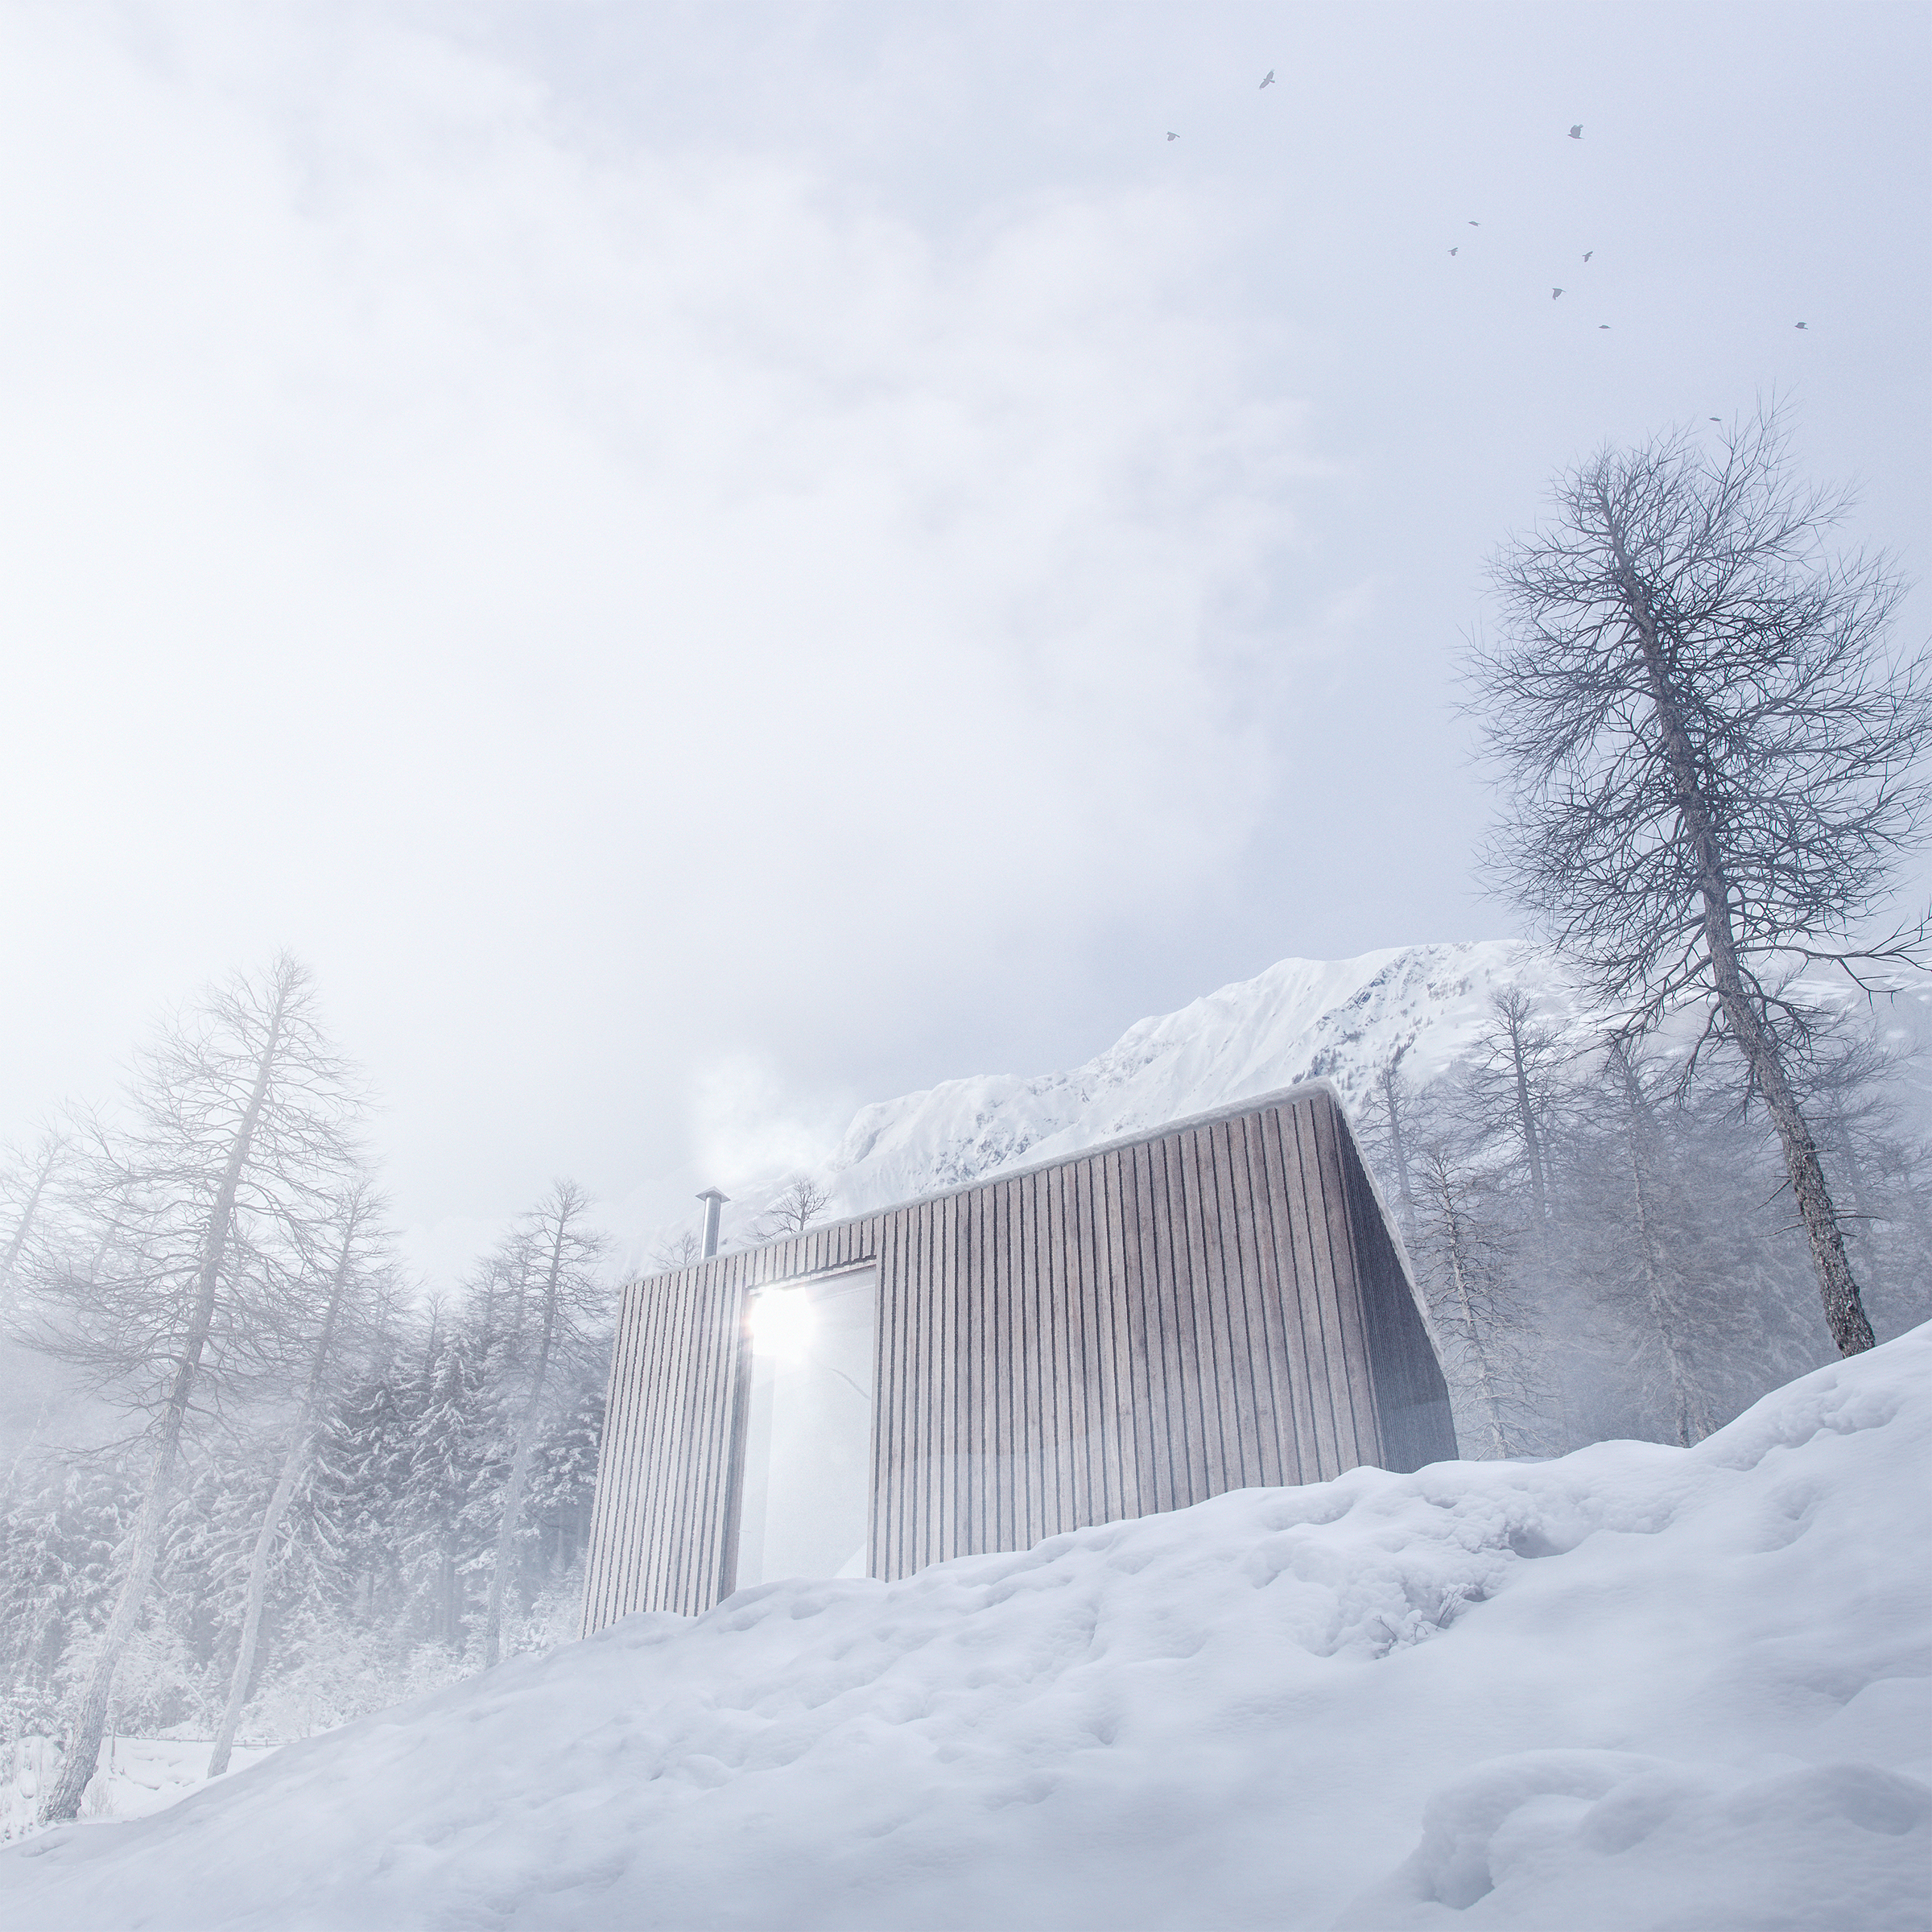 Winter Cabin II